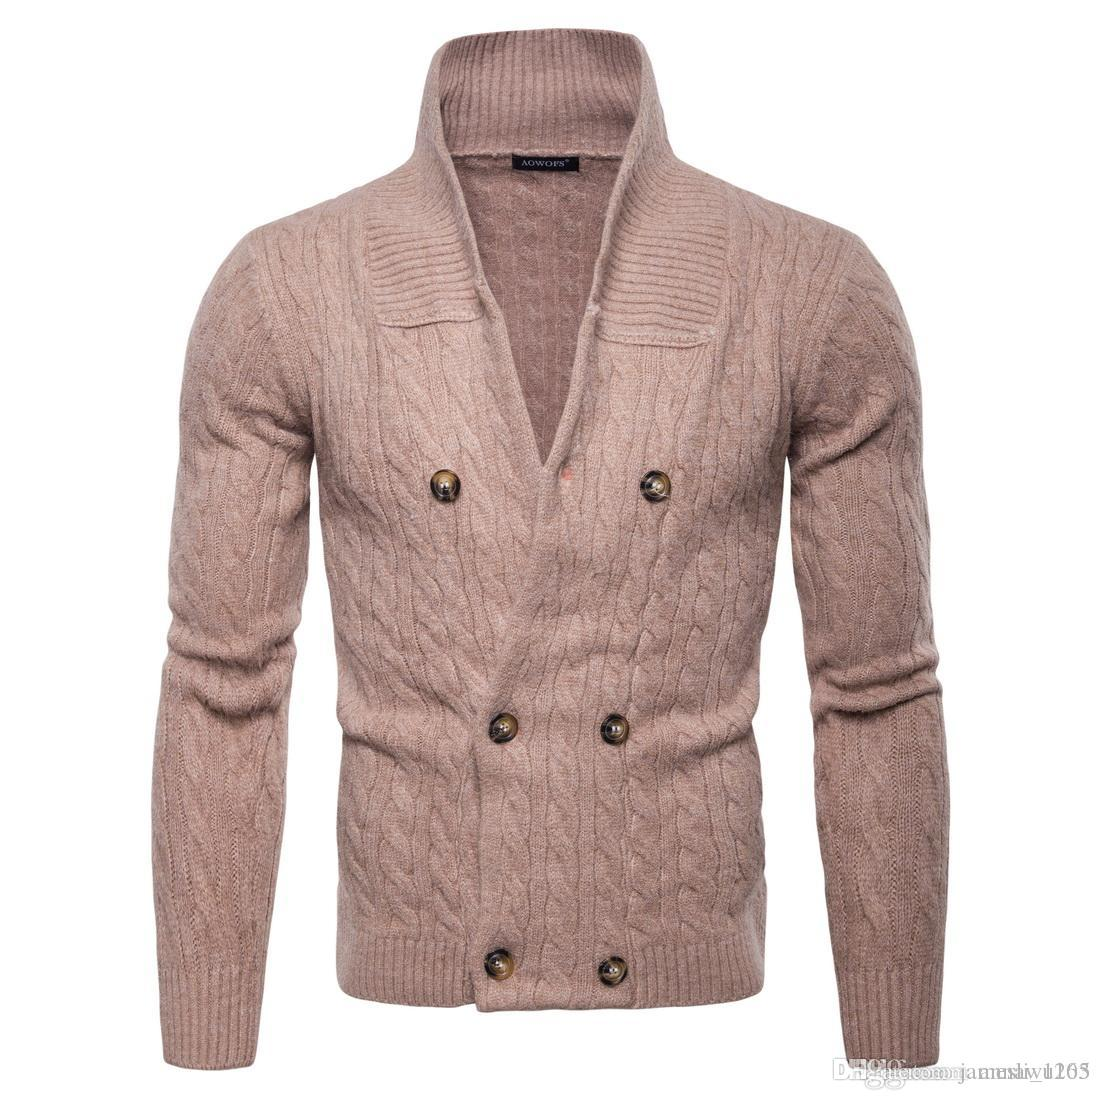 e5b7fa6182 2019 New Cardigan Sweater Men  V Neck Double Breasted Sweater With Long  Sleeve High Quality Cotton Blend Knitted Winter Mens Sweater For Sal From  ...